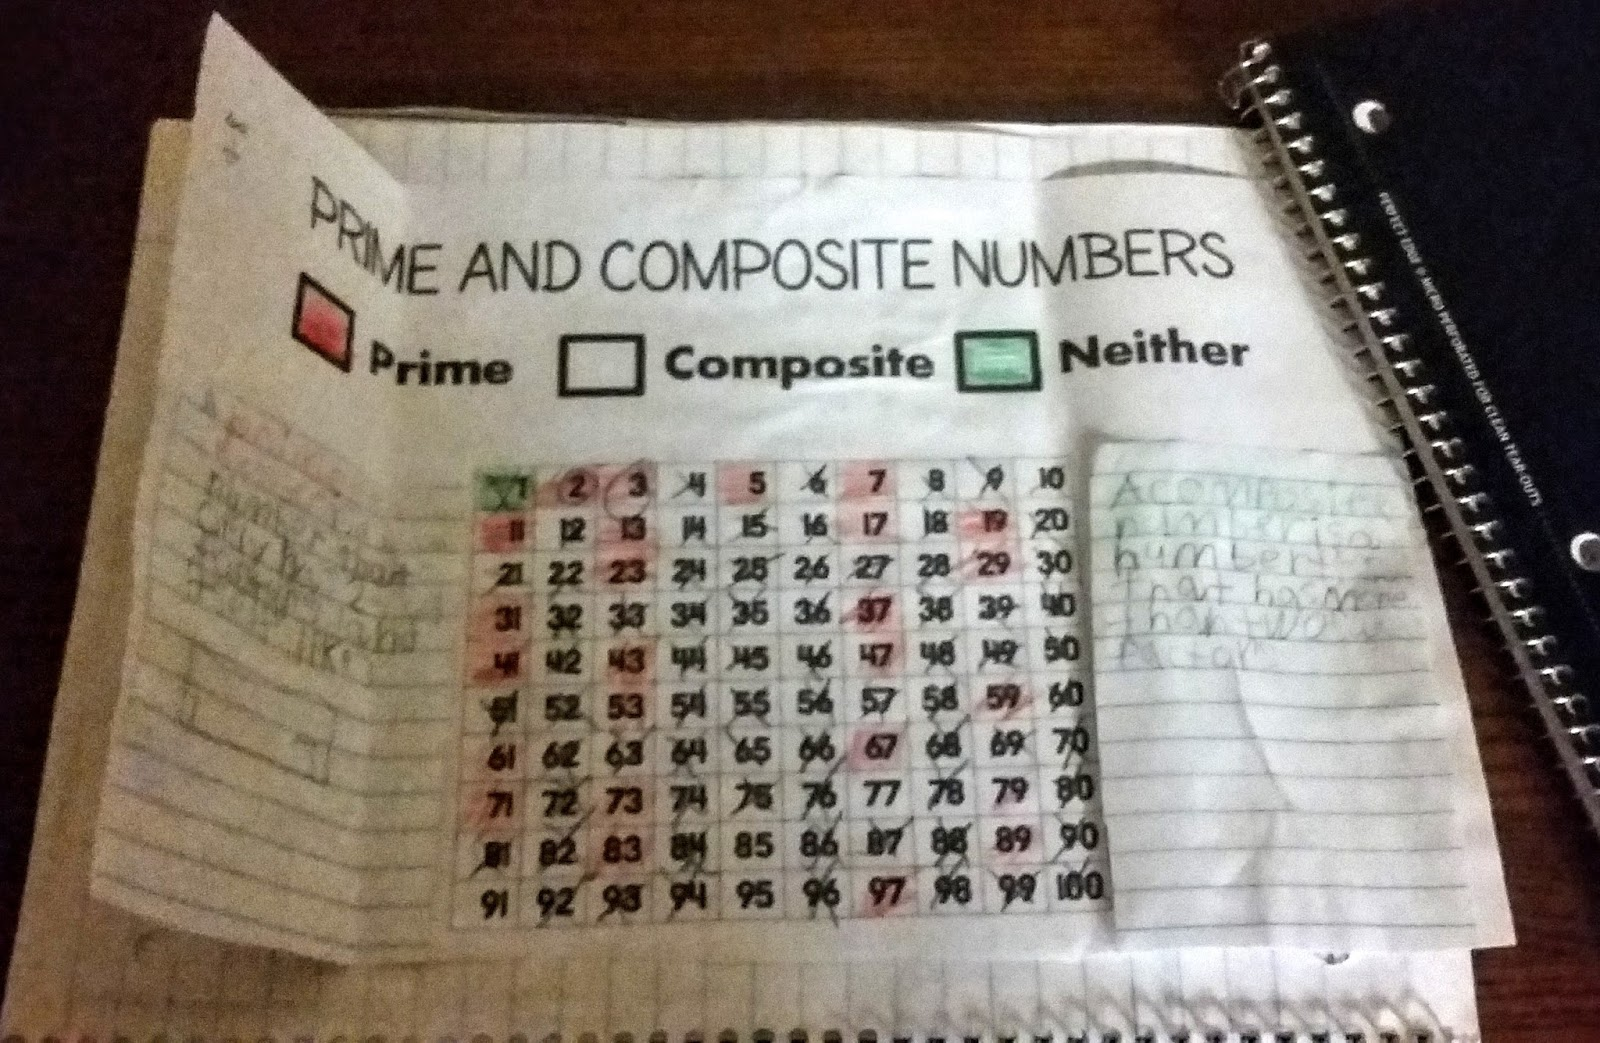 worksheet Odd Even Prime And Composite Numbers Worksheet prime composite numbers tj homeschooling you can write the definitions of primecomposite on it as well so its awesome for notebooking just doesnt include instructions